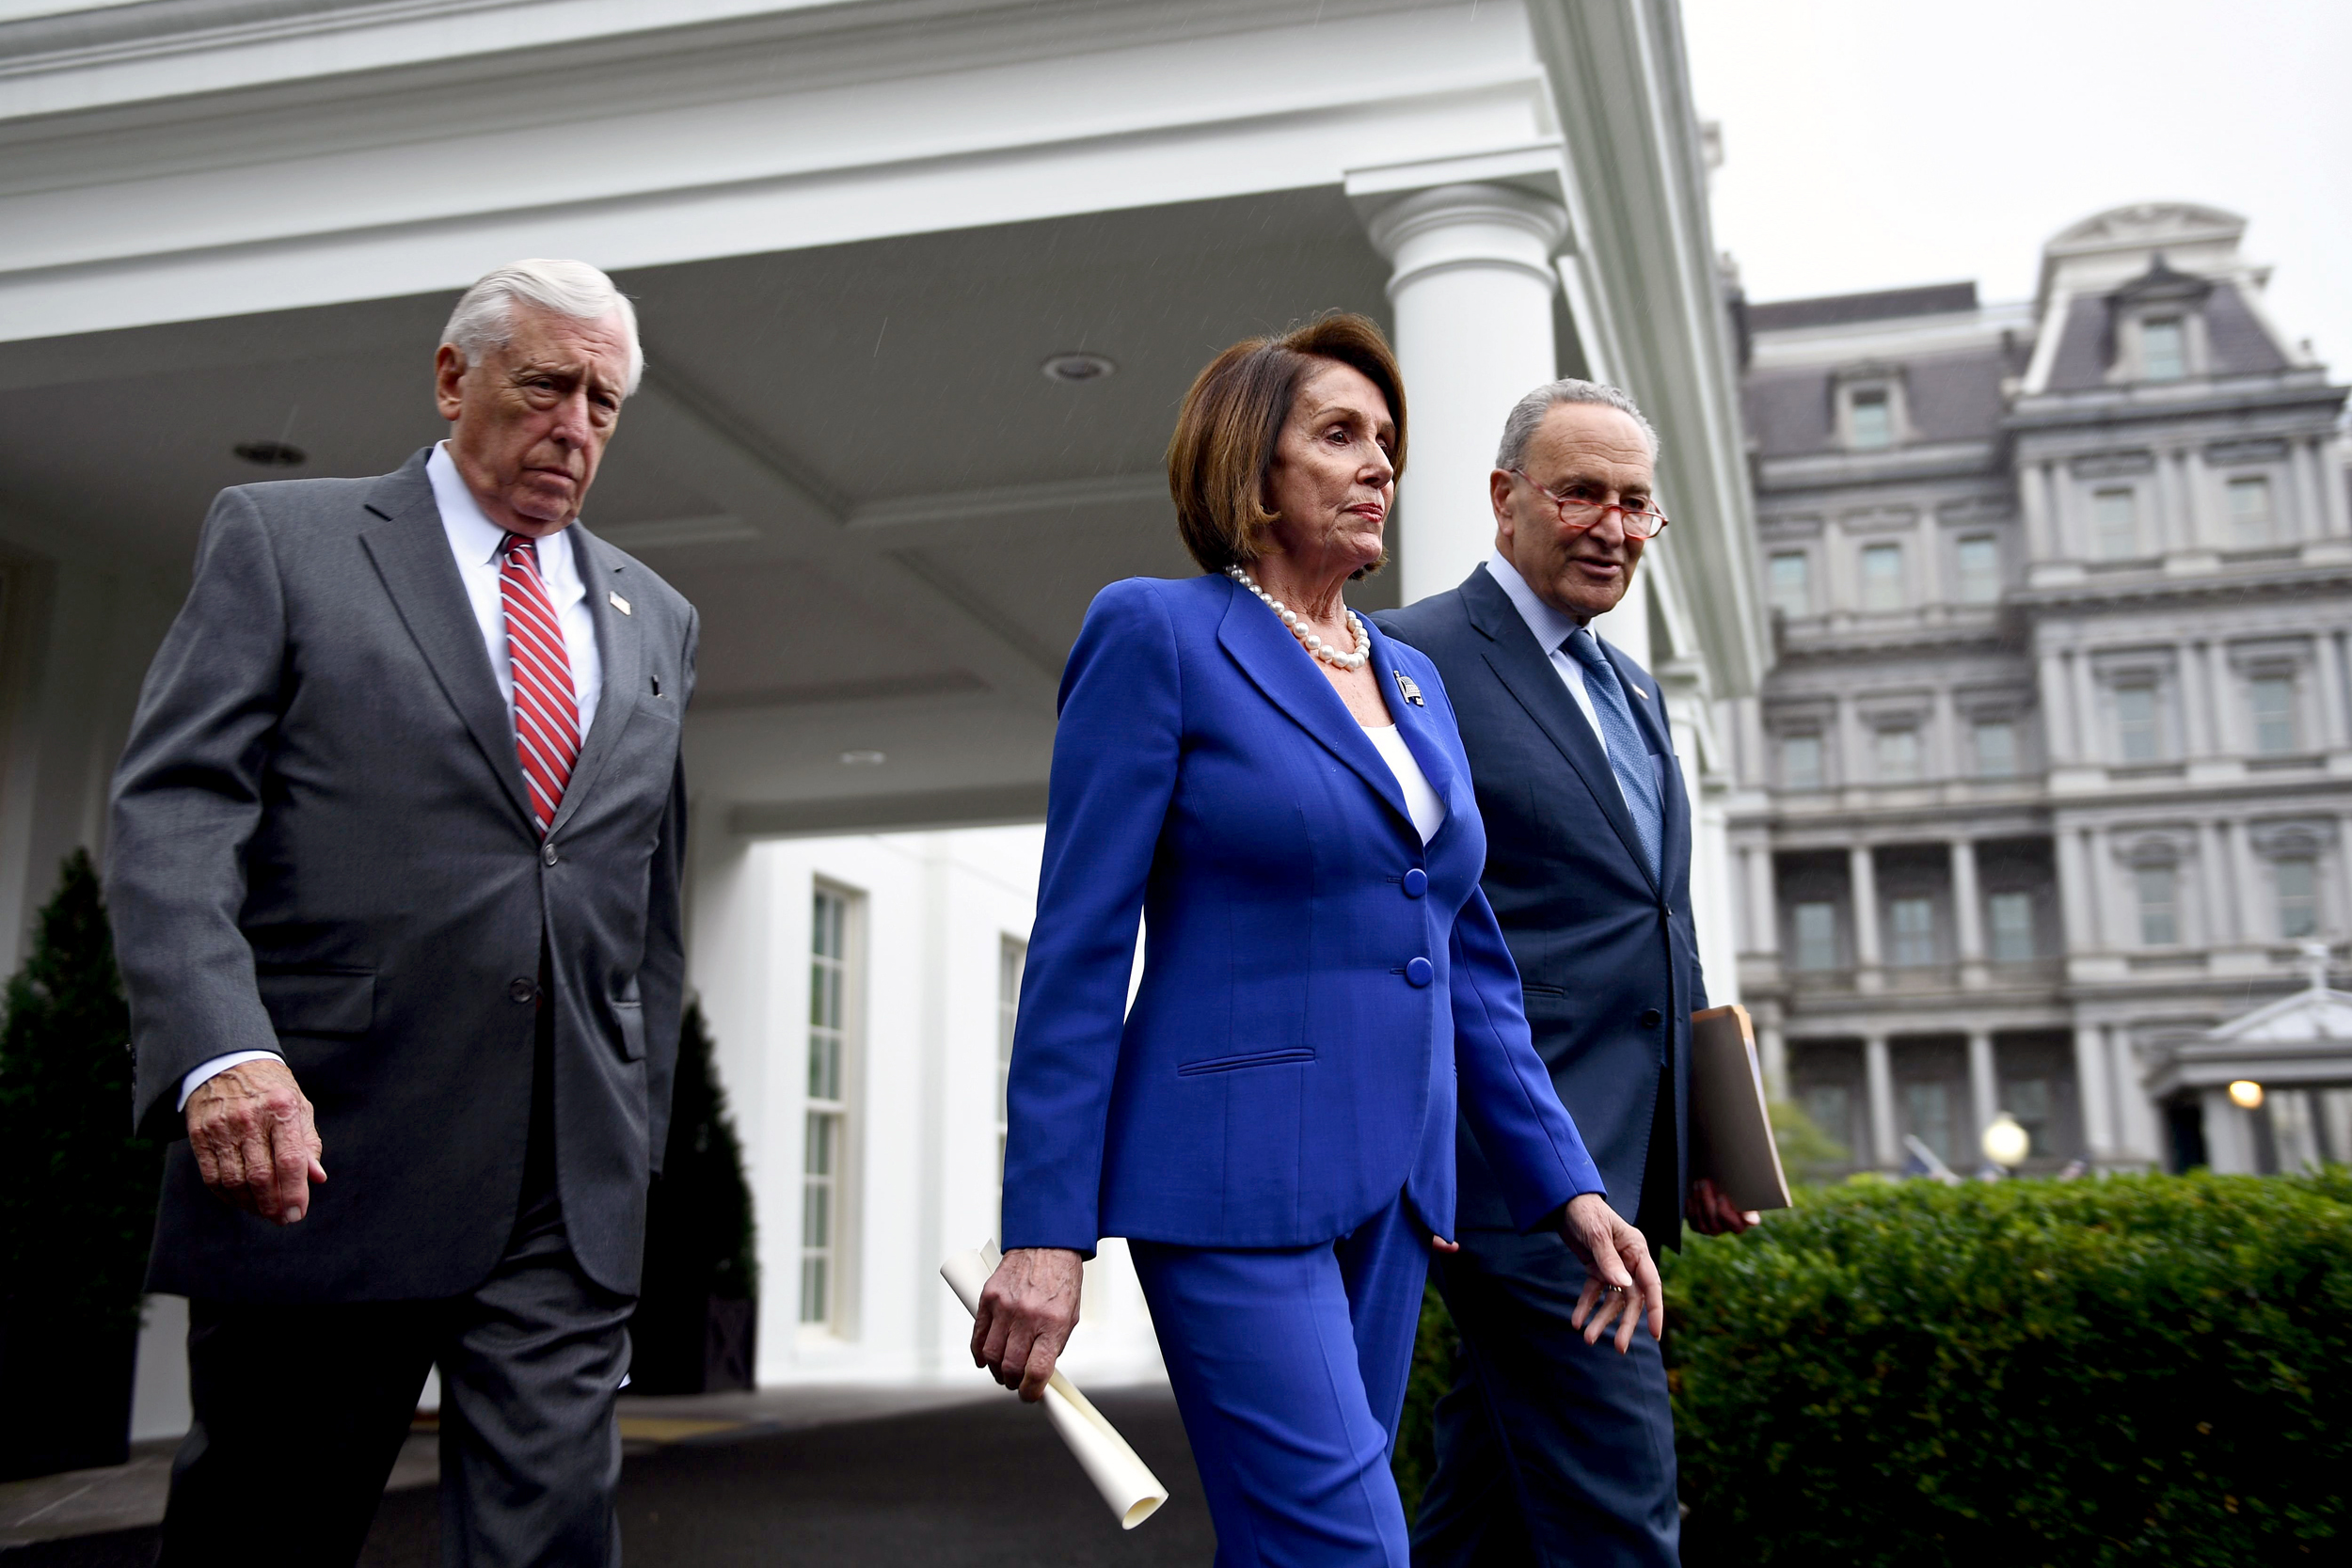 Democrats-angrily-walk-out-of-White-House-meeting-after-Trump-'meltdown'